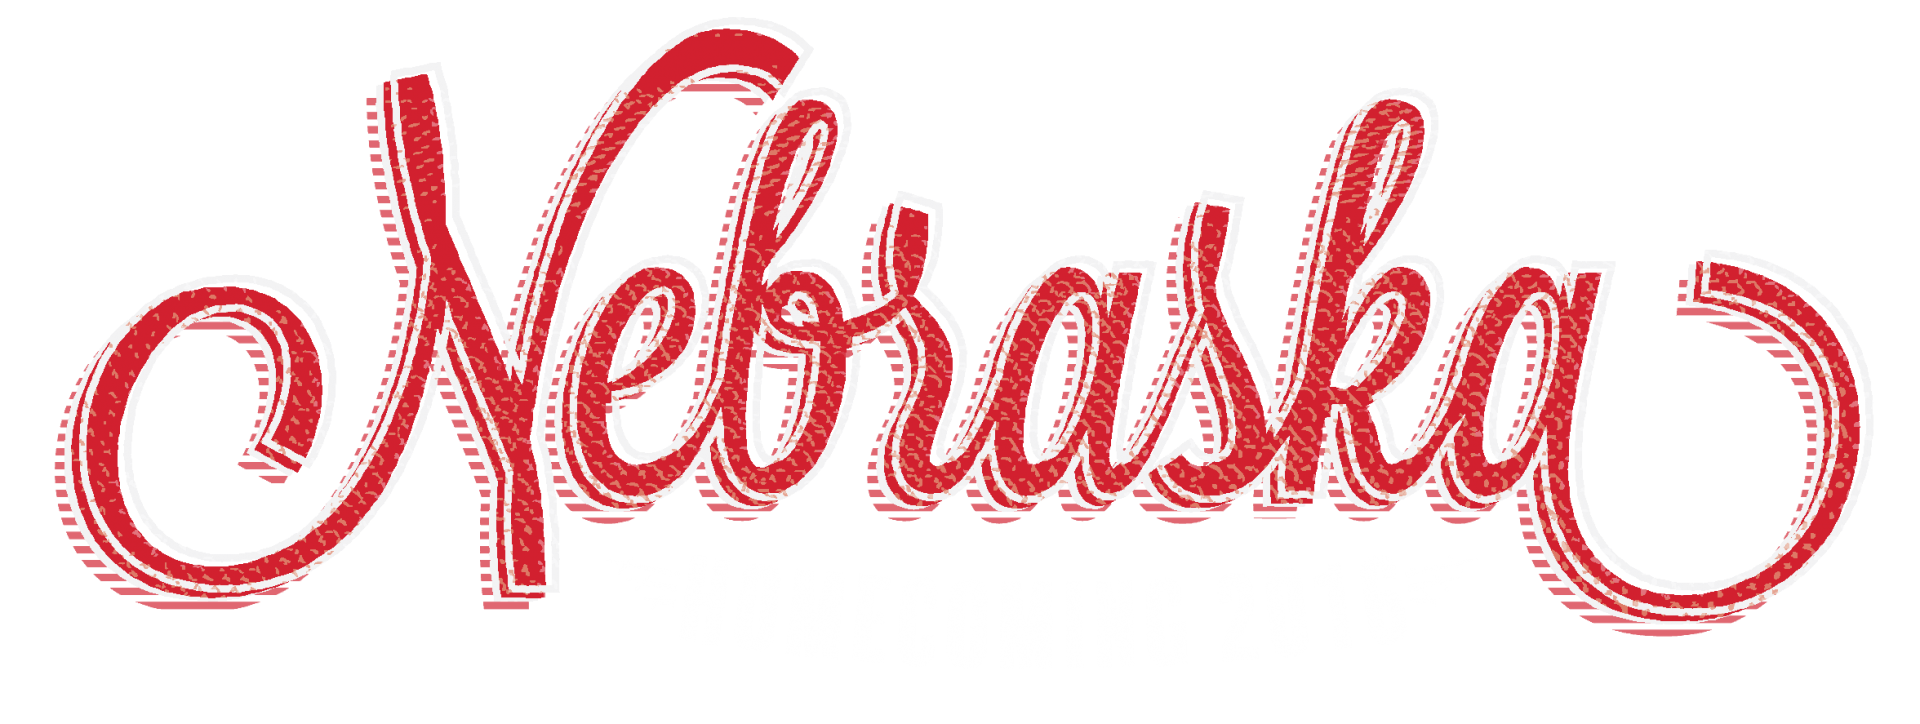 Nebraska Homecoming 2016 illustration